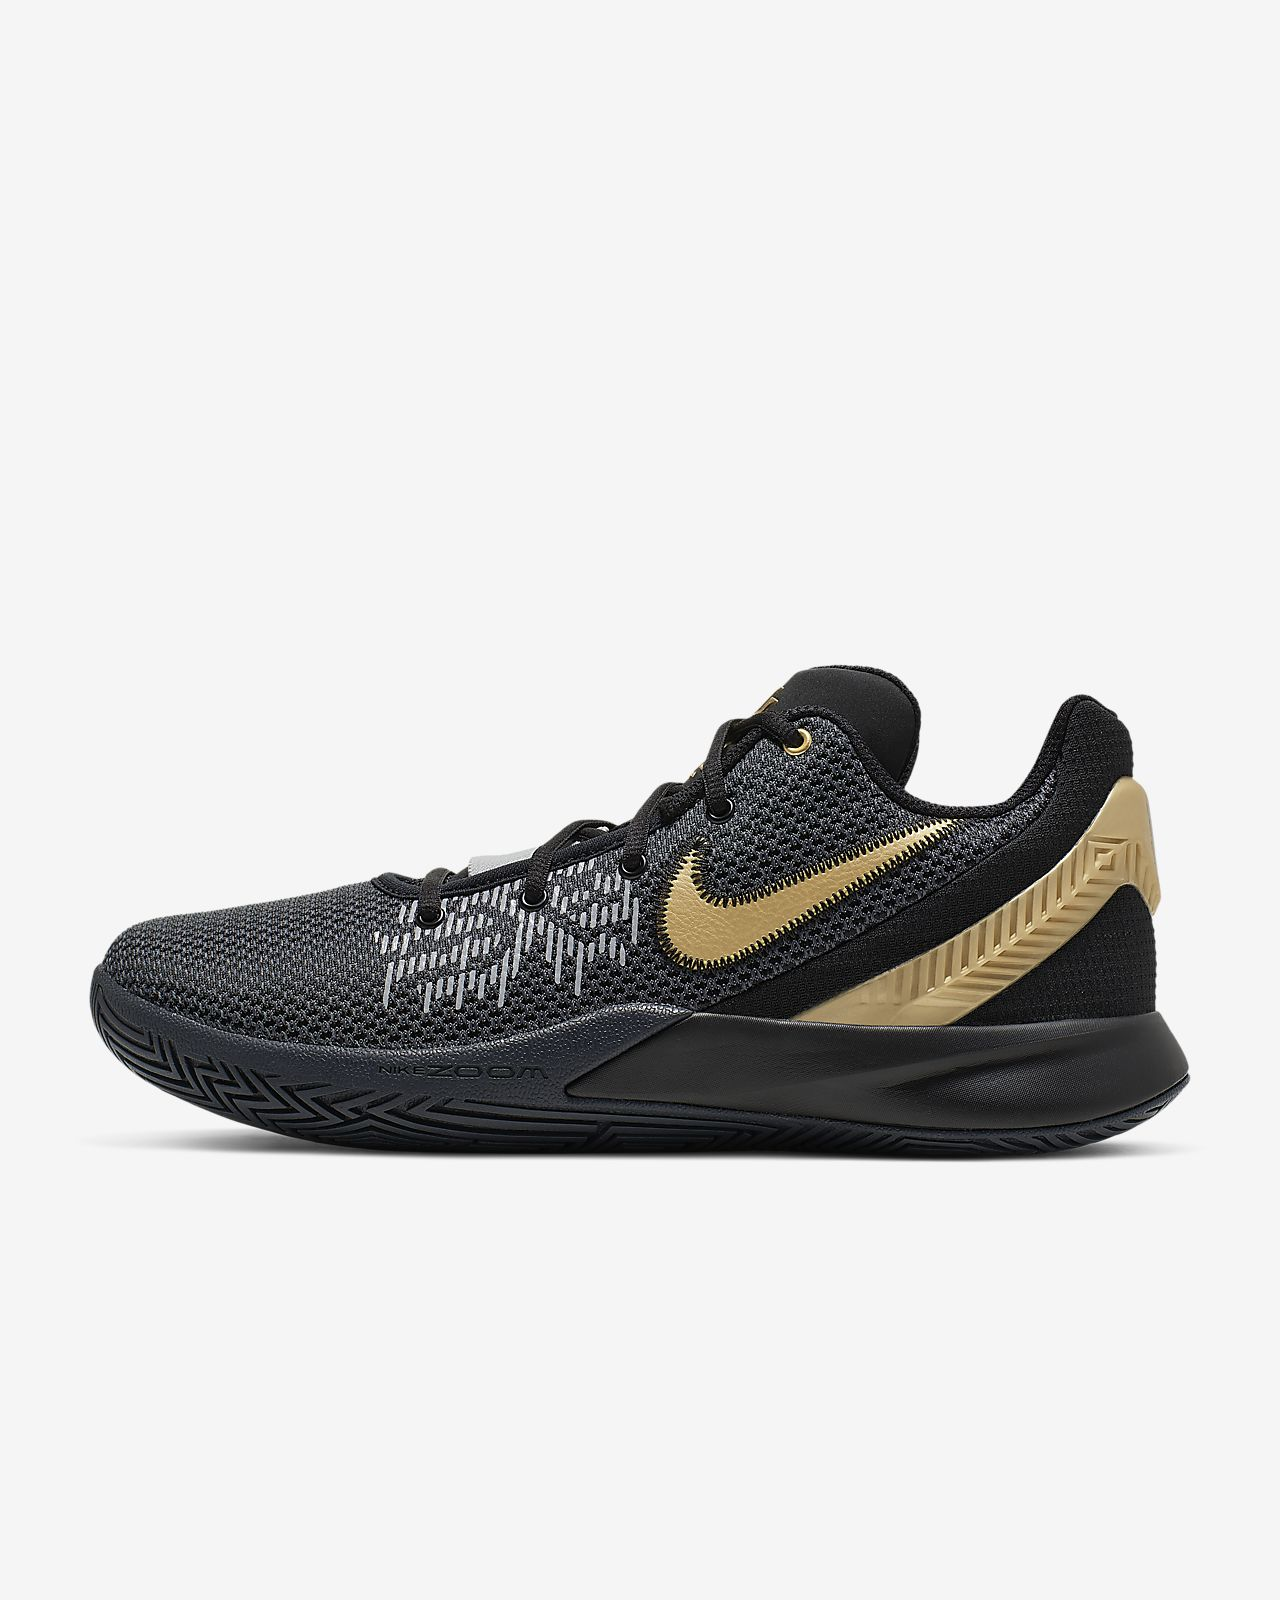 check out 76262 97705 Kyrie Flytrap II Basketball Shoe